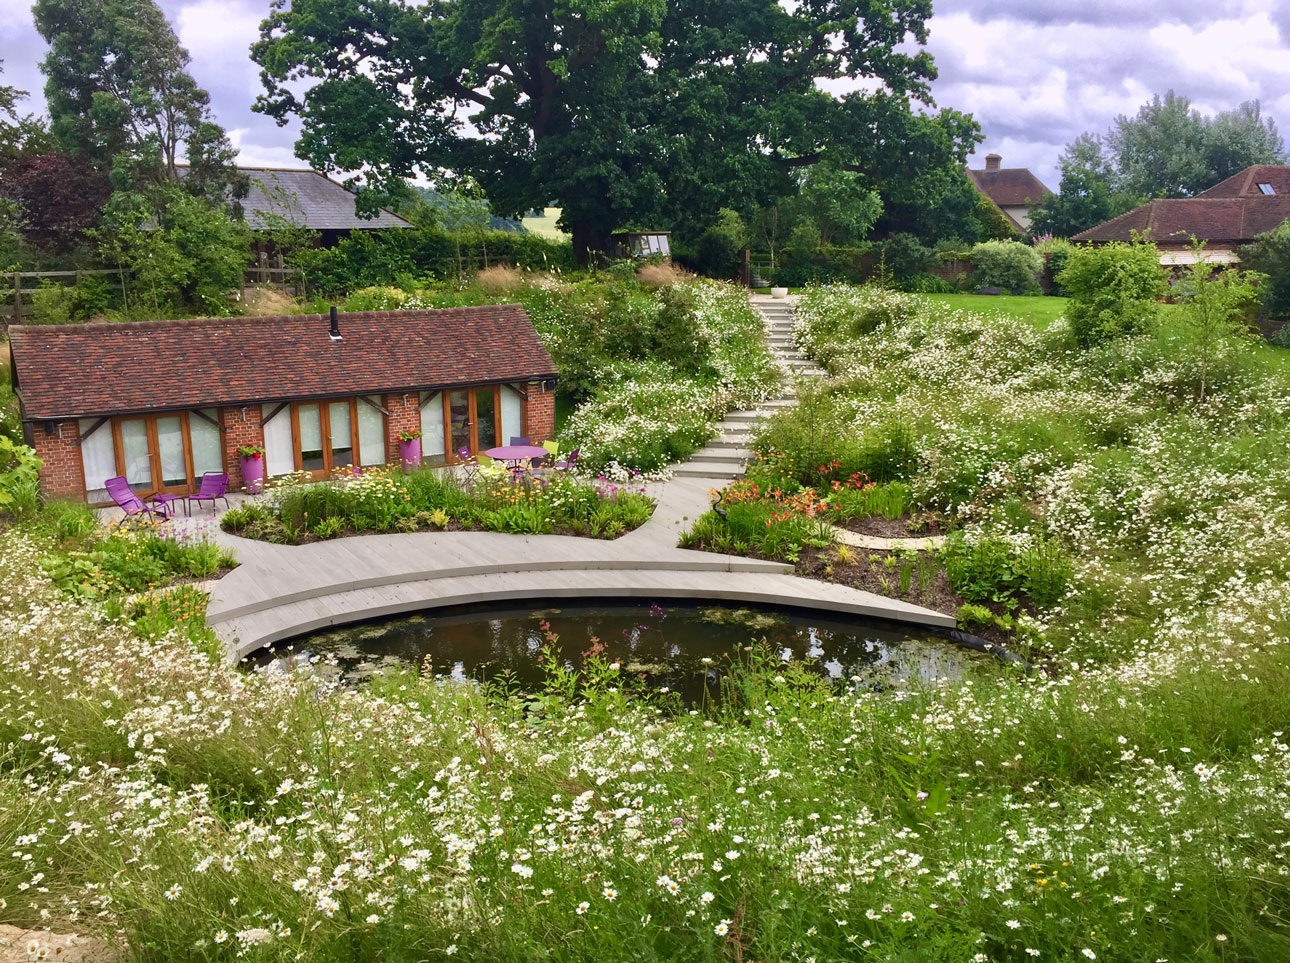 Steep wildflower meadows leading to swimming pond in Hampshire Garden design ideal for pollinators and other wildlife